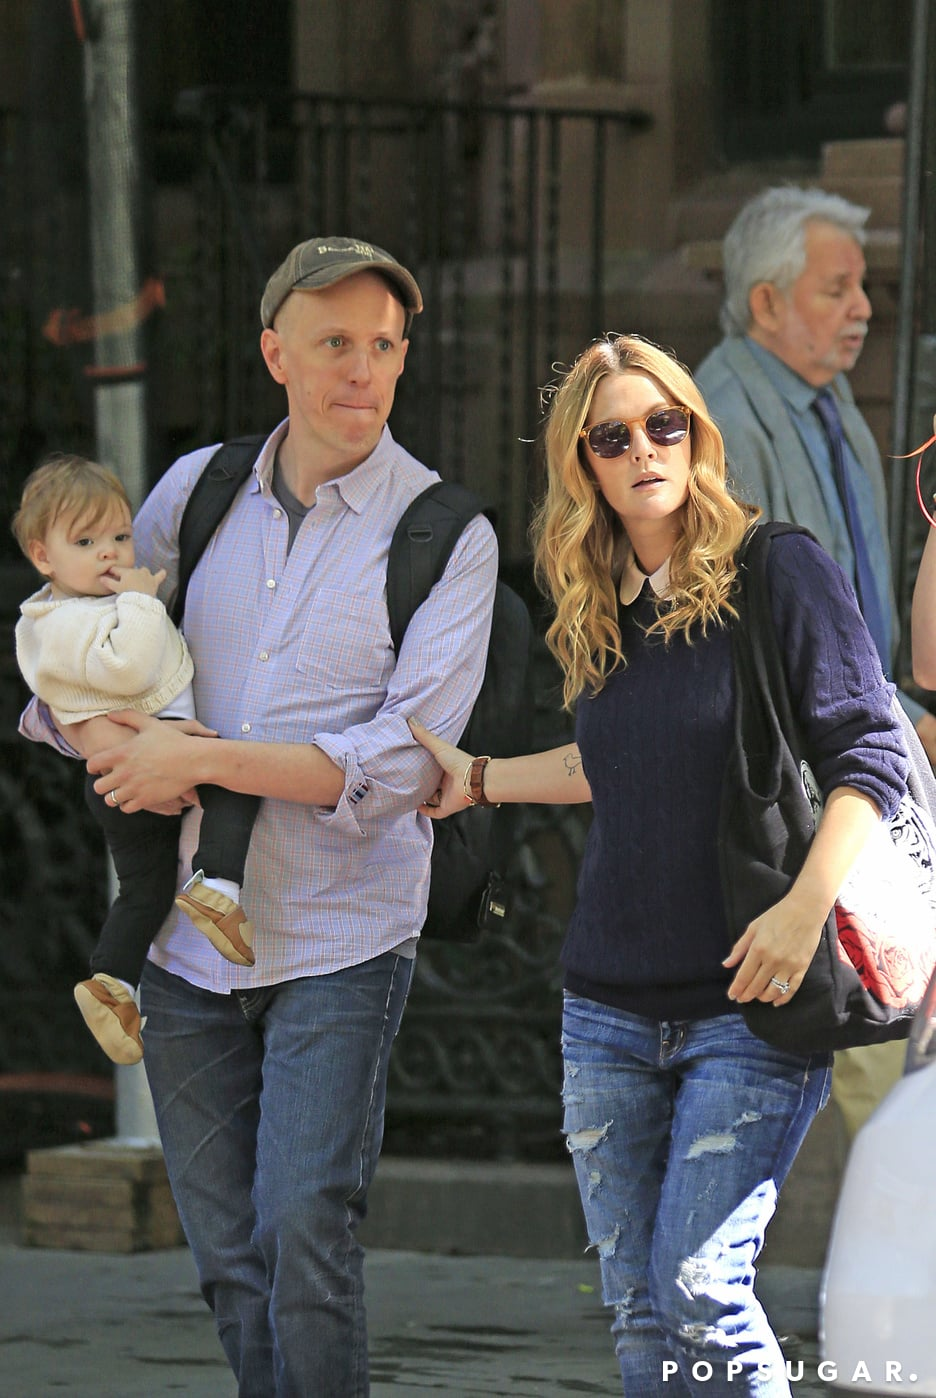 Drew Barrymore went to visit pal Jimmy Fallon on his birthday.